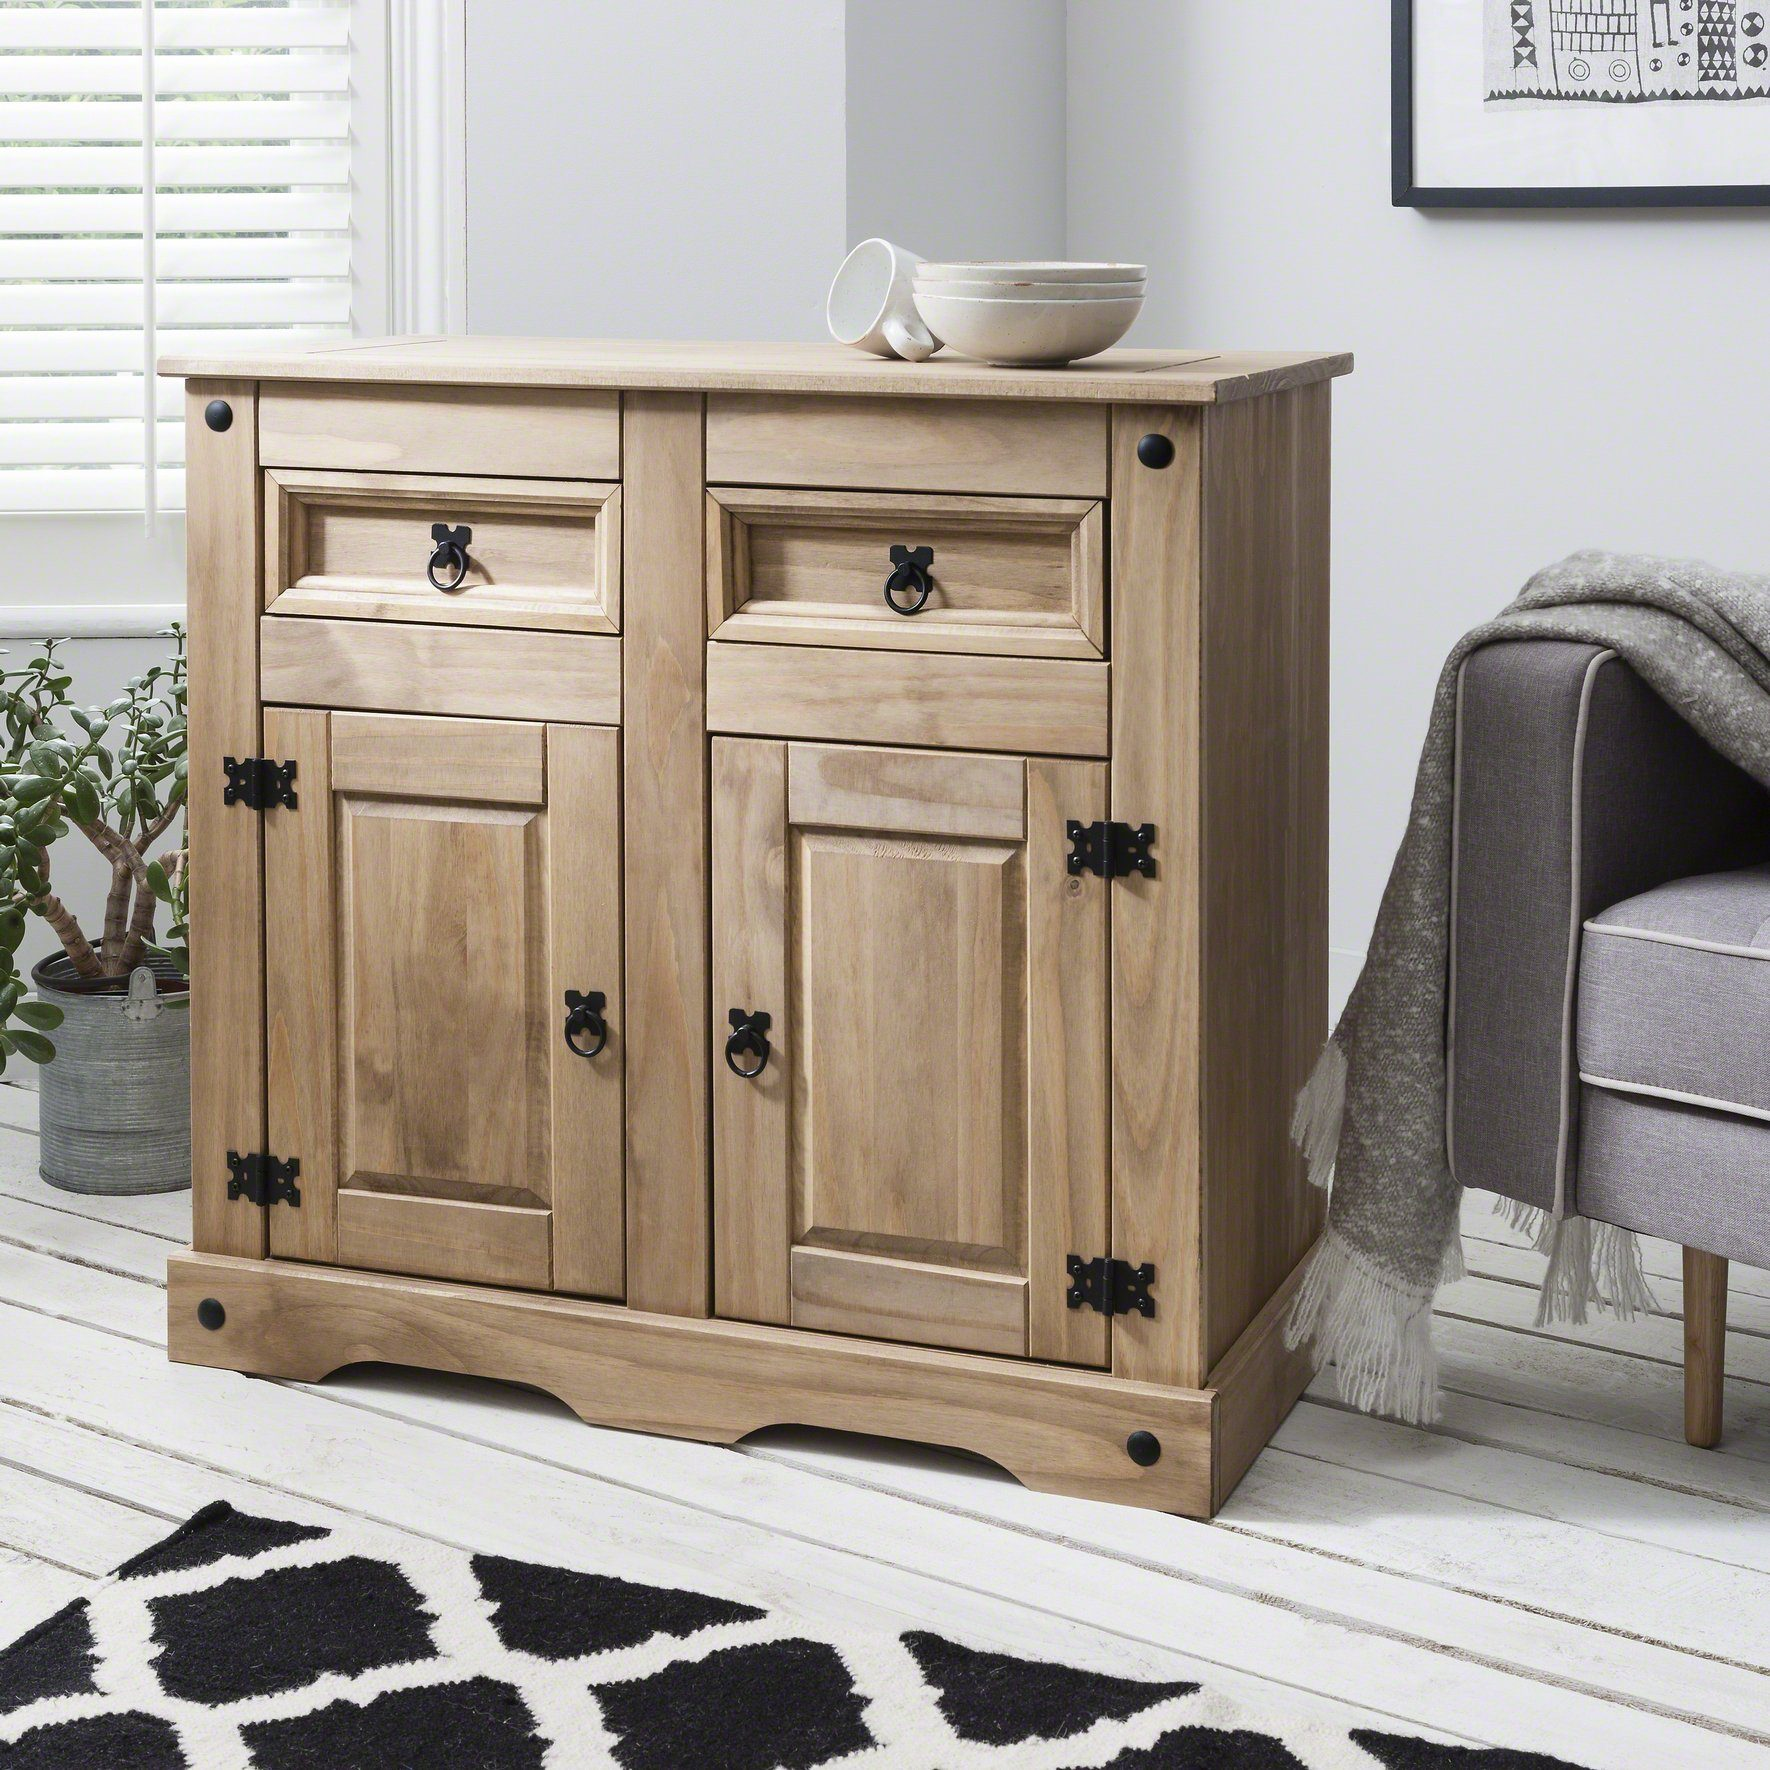 Sideboard - Solid Wood - 2 Drawers - Laura James